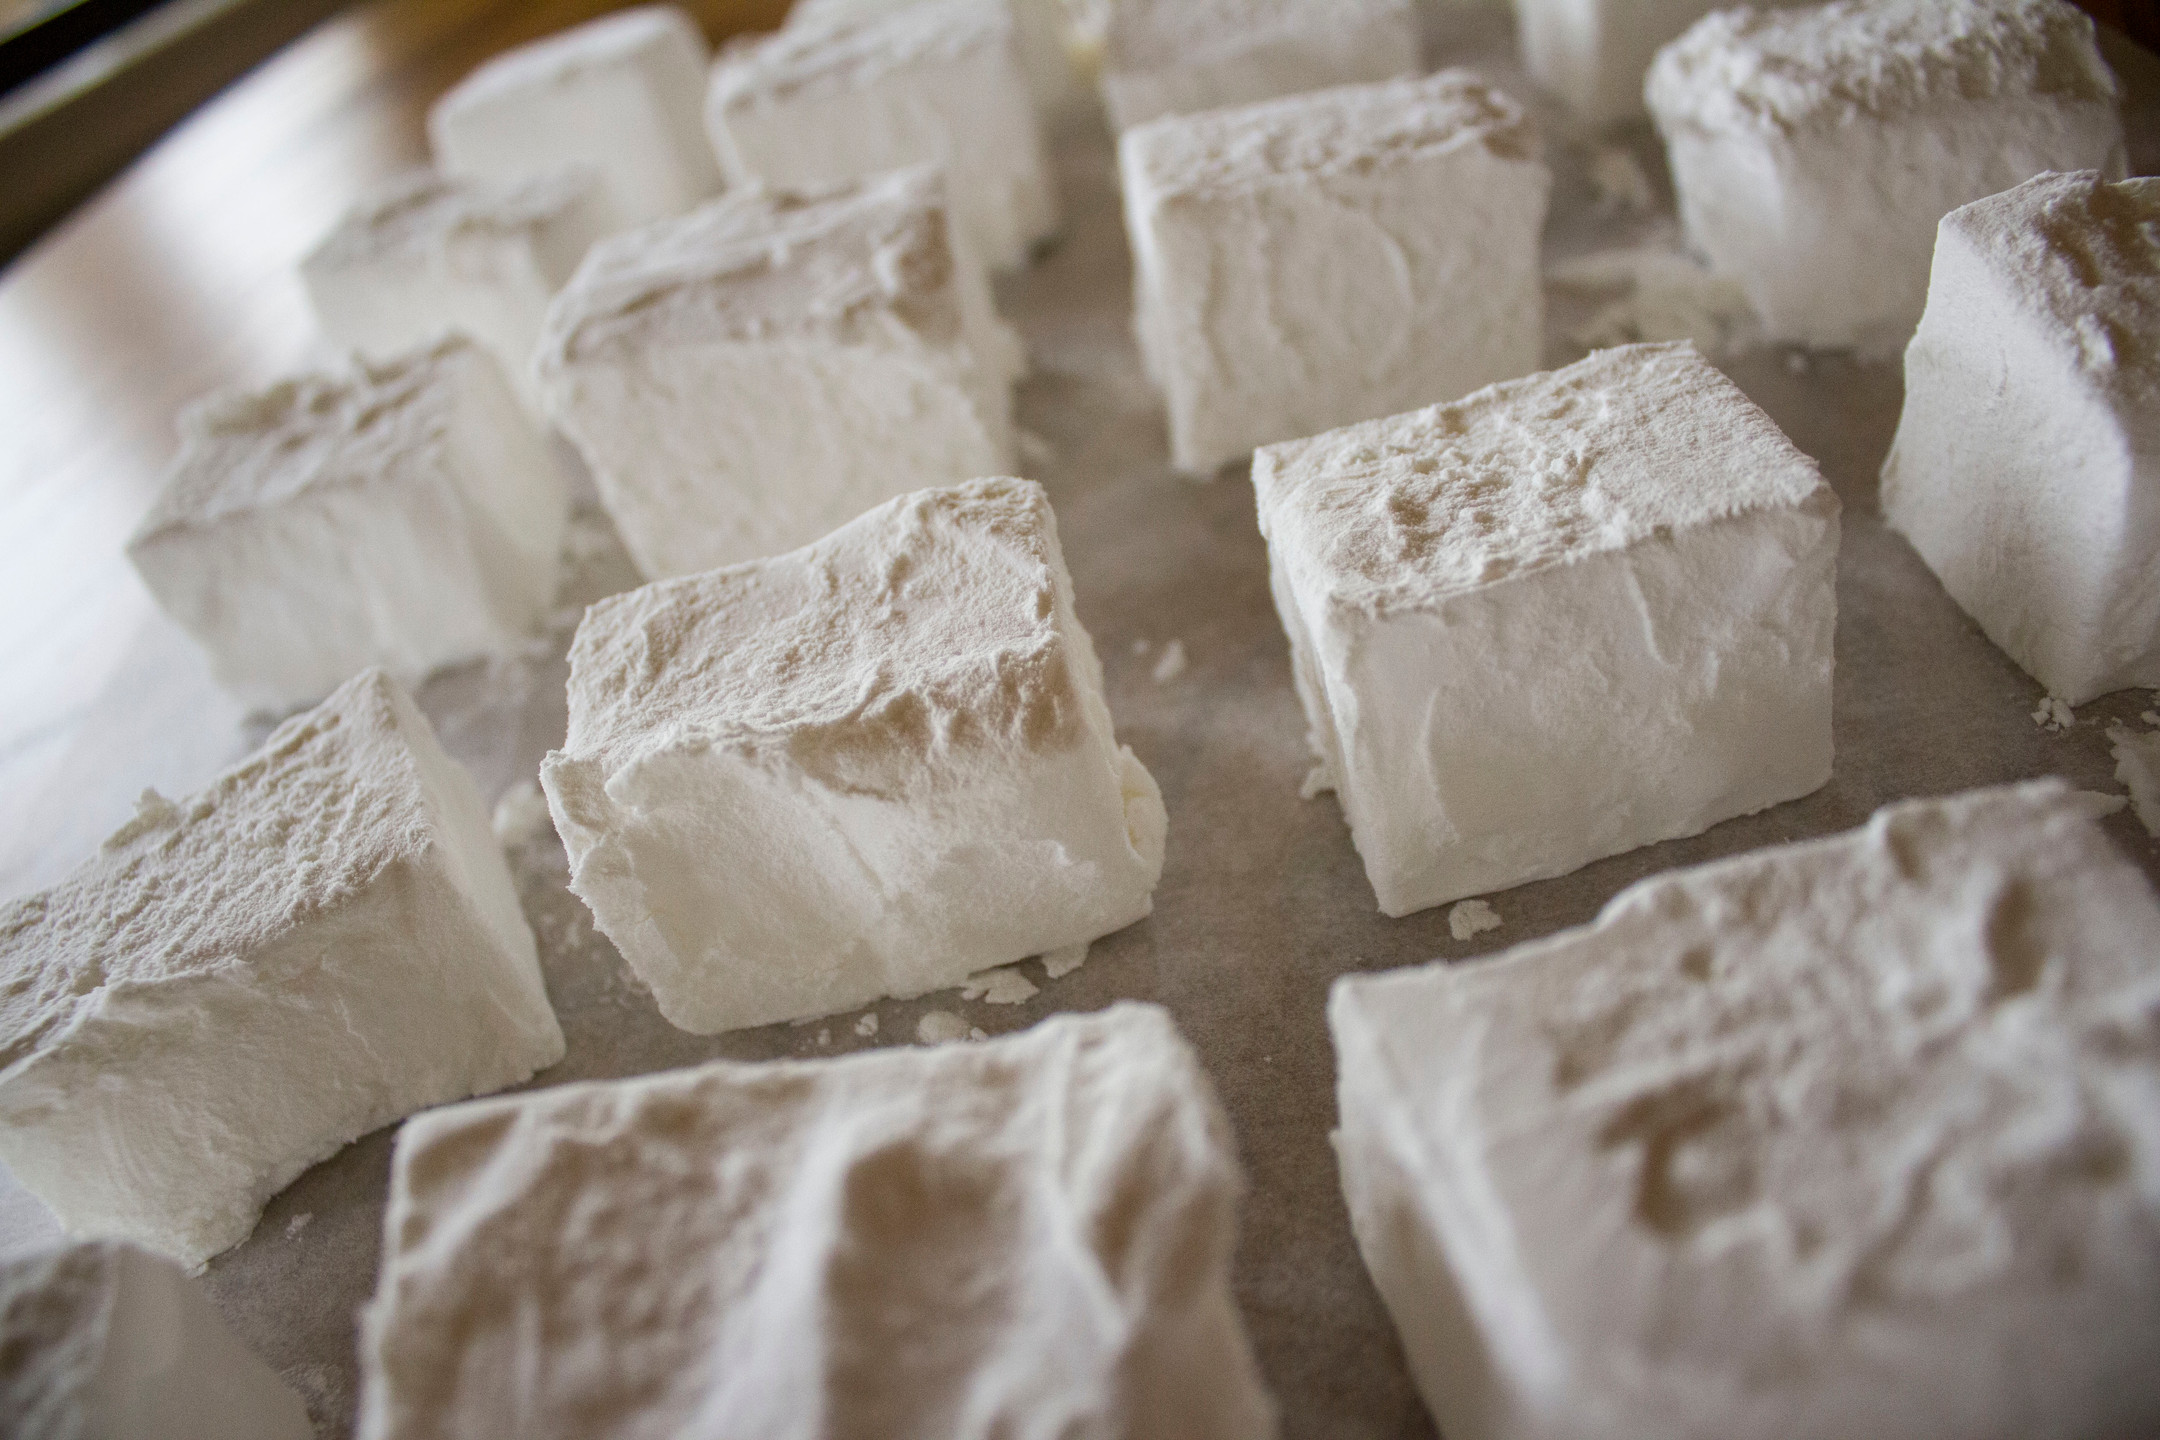 For the chocolate marshmallows, cocoa powder was used for coating. For the vanilla and peppermint marshmallows, cornstarch was used for coating.